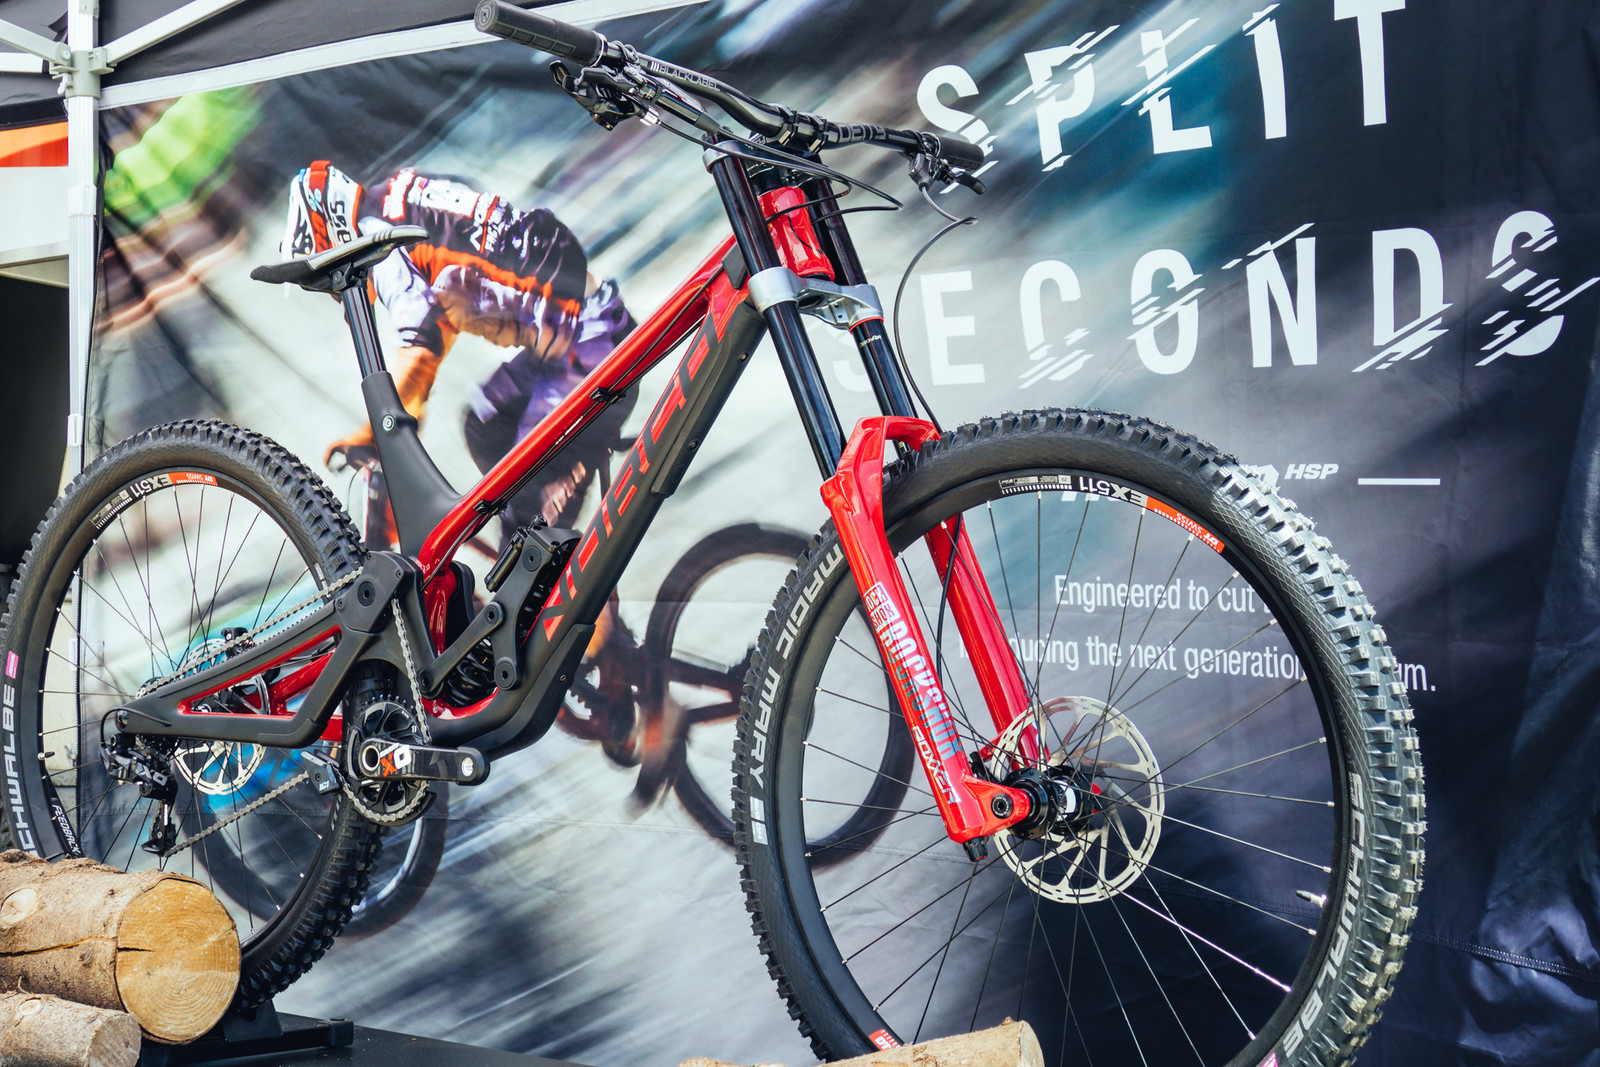 Norco Officially Releases the Aurum HSP Downhill Bike - Sea Otter Classic